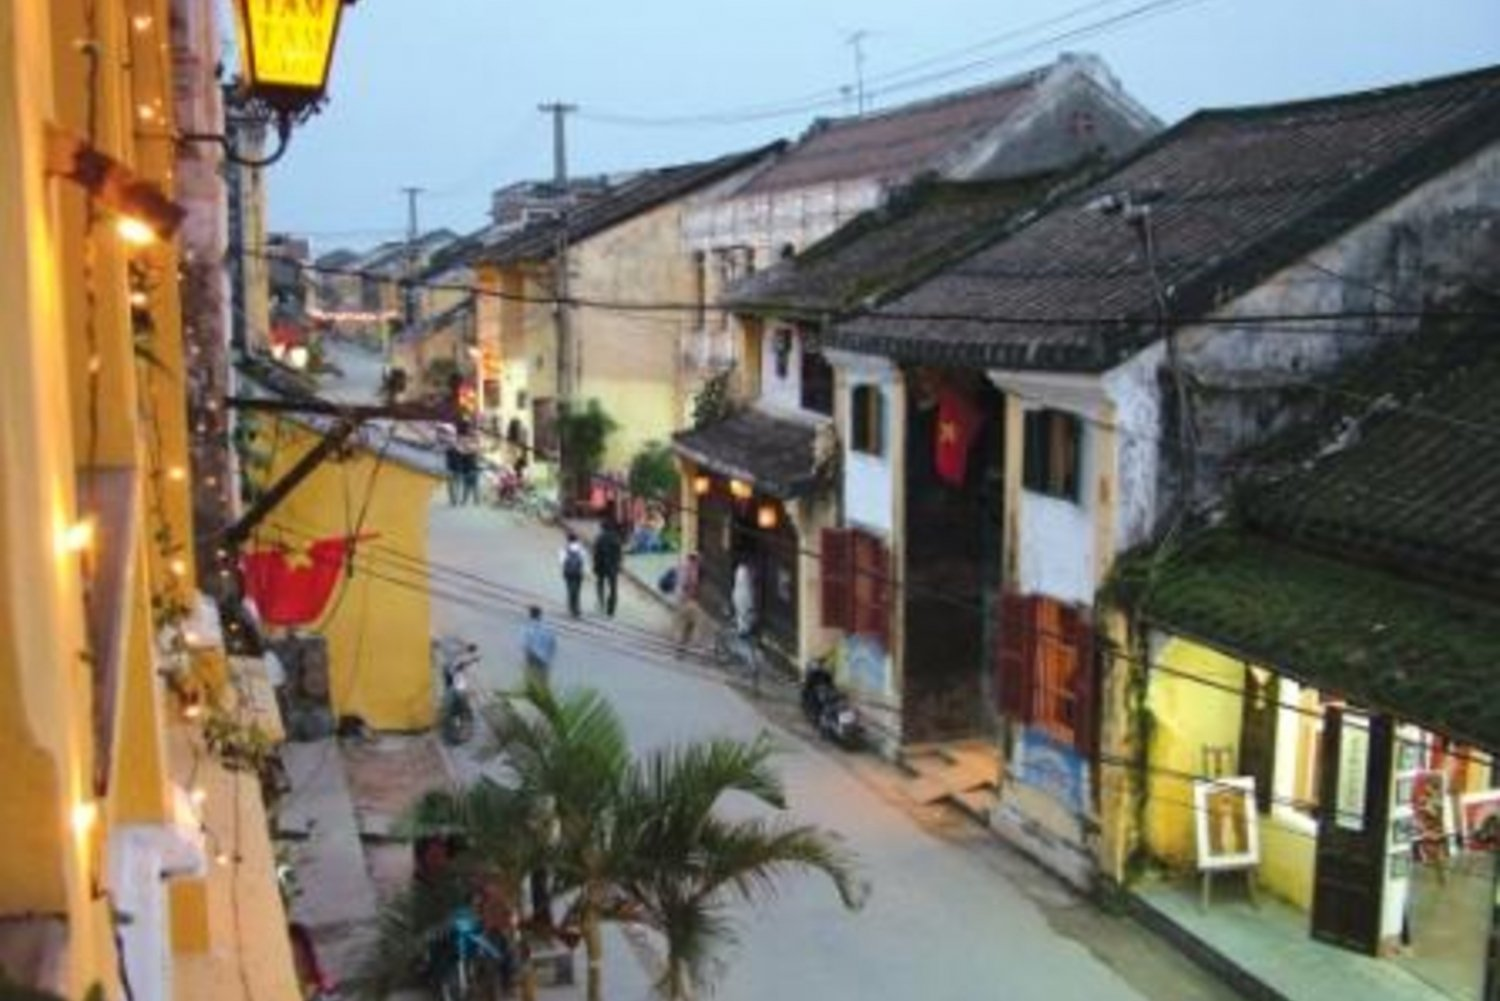 Hoi An Walking Tour & Cooking Class - Small Group